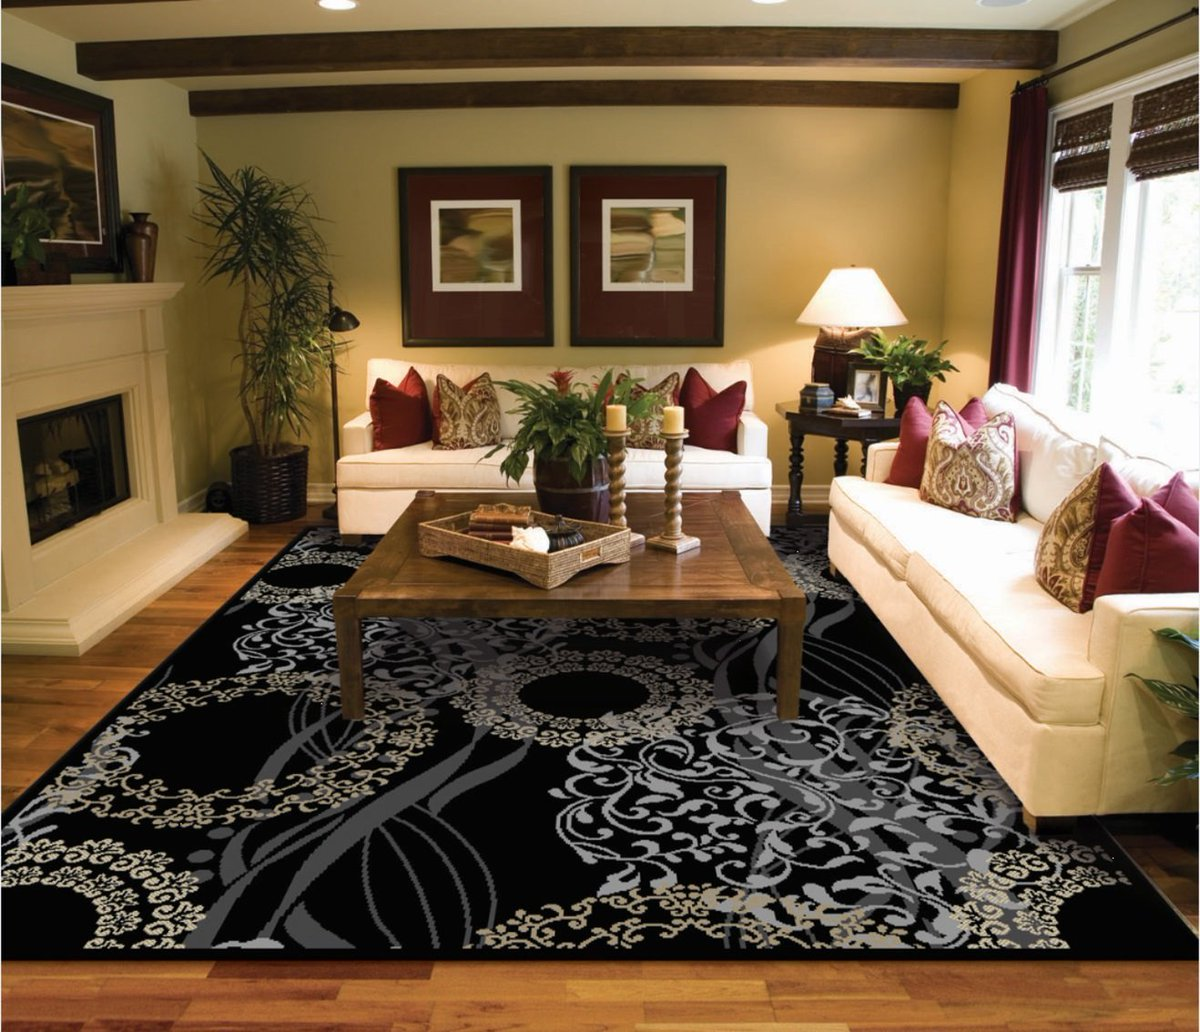 Choose From Our Stock Of Orientals Bound Area Rugs Or Any Carpets Can Be Custom Cut And Bounded To Your Specifications